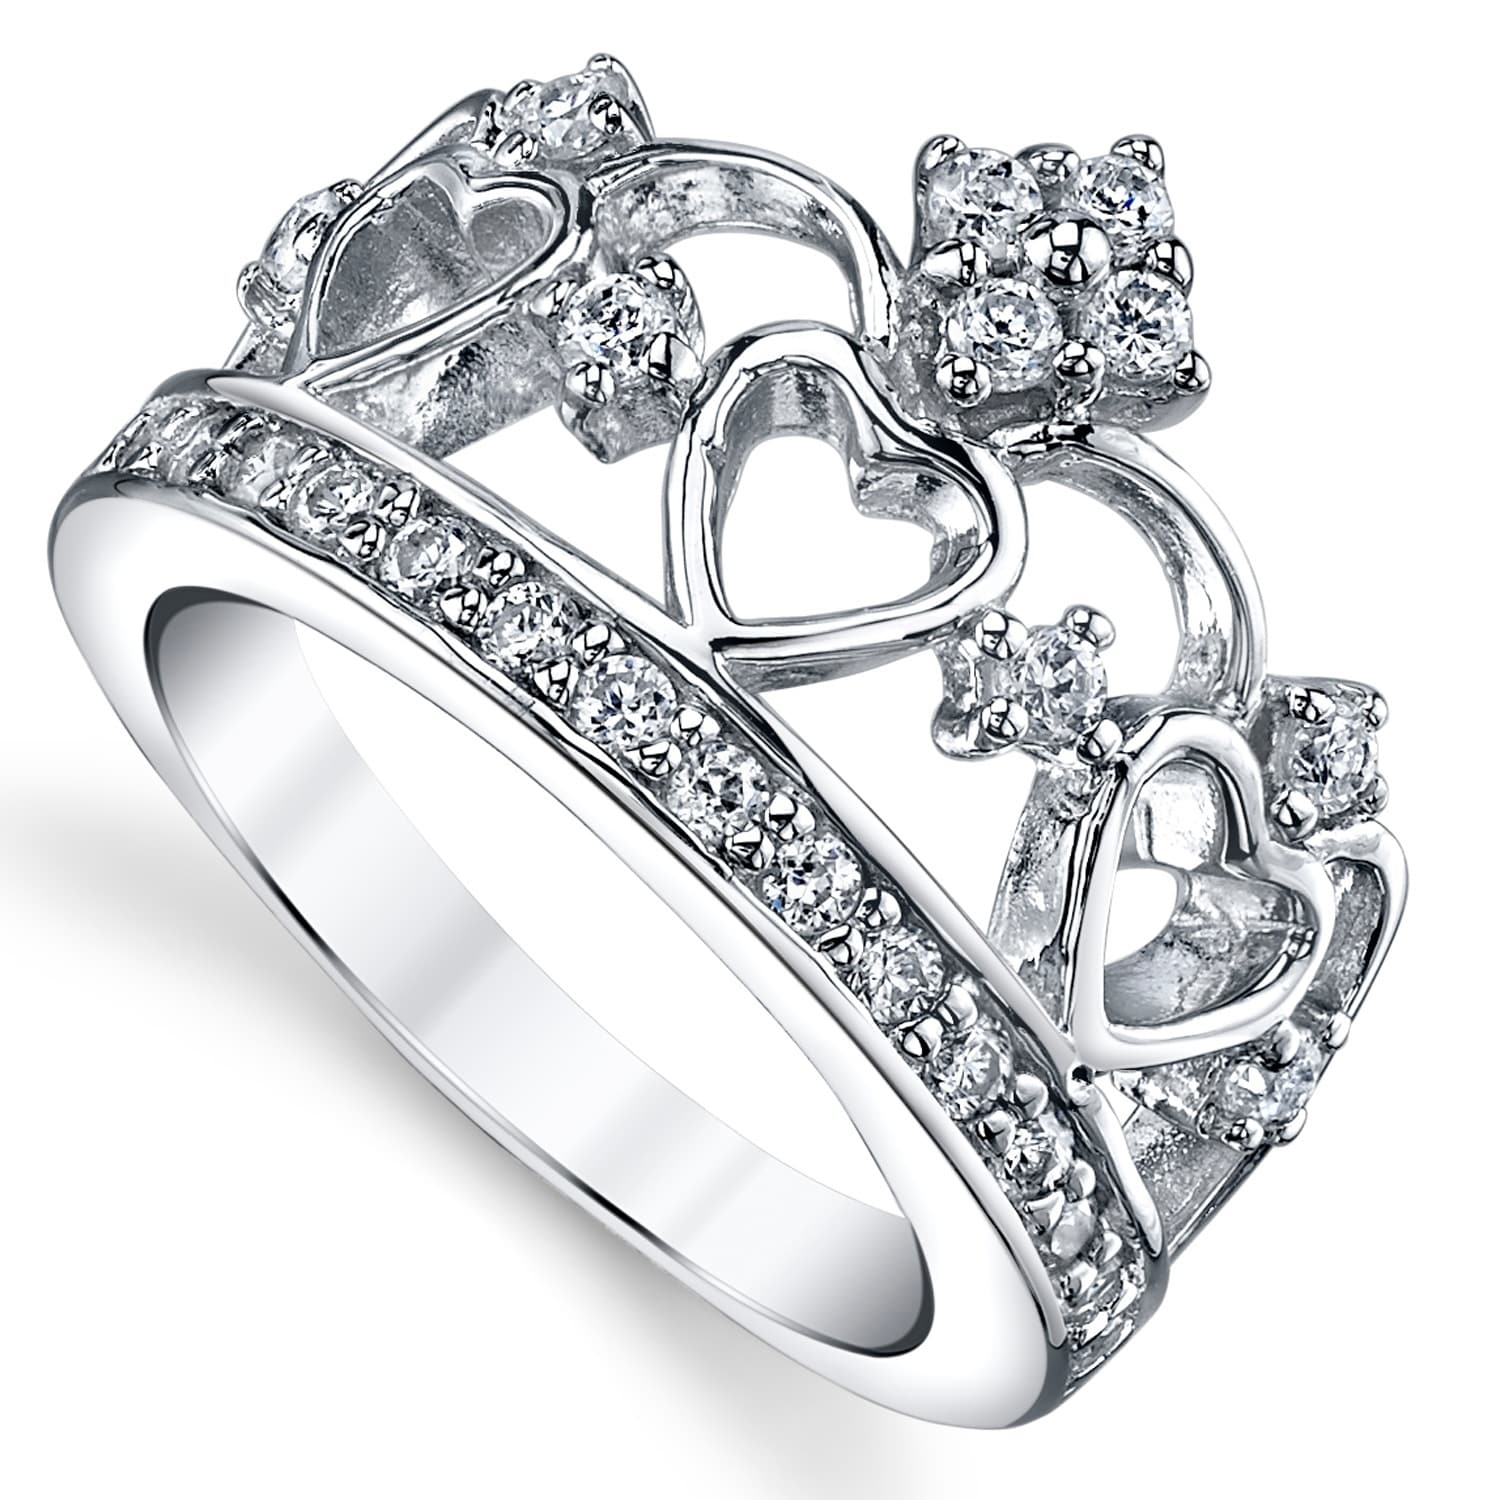 collection in chaumet phine of jos s chaumetpearcutring an bridal false scale engagement tiara to pear cut rings how upscale ring crop subsampling features the a enduring allure buy diamond shape know